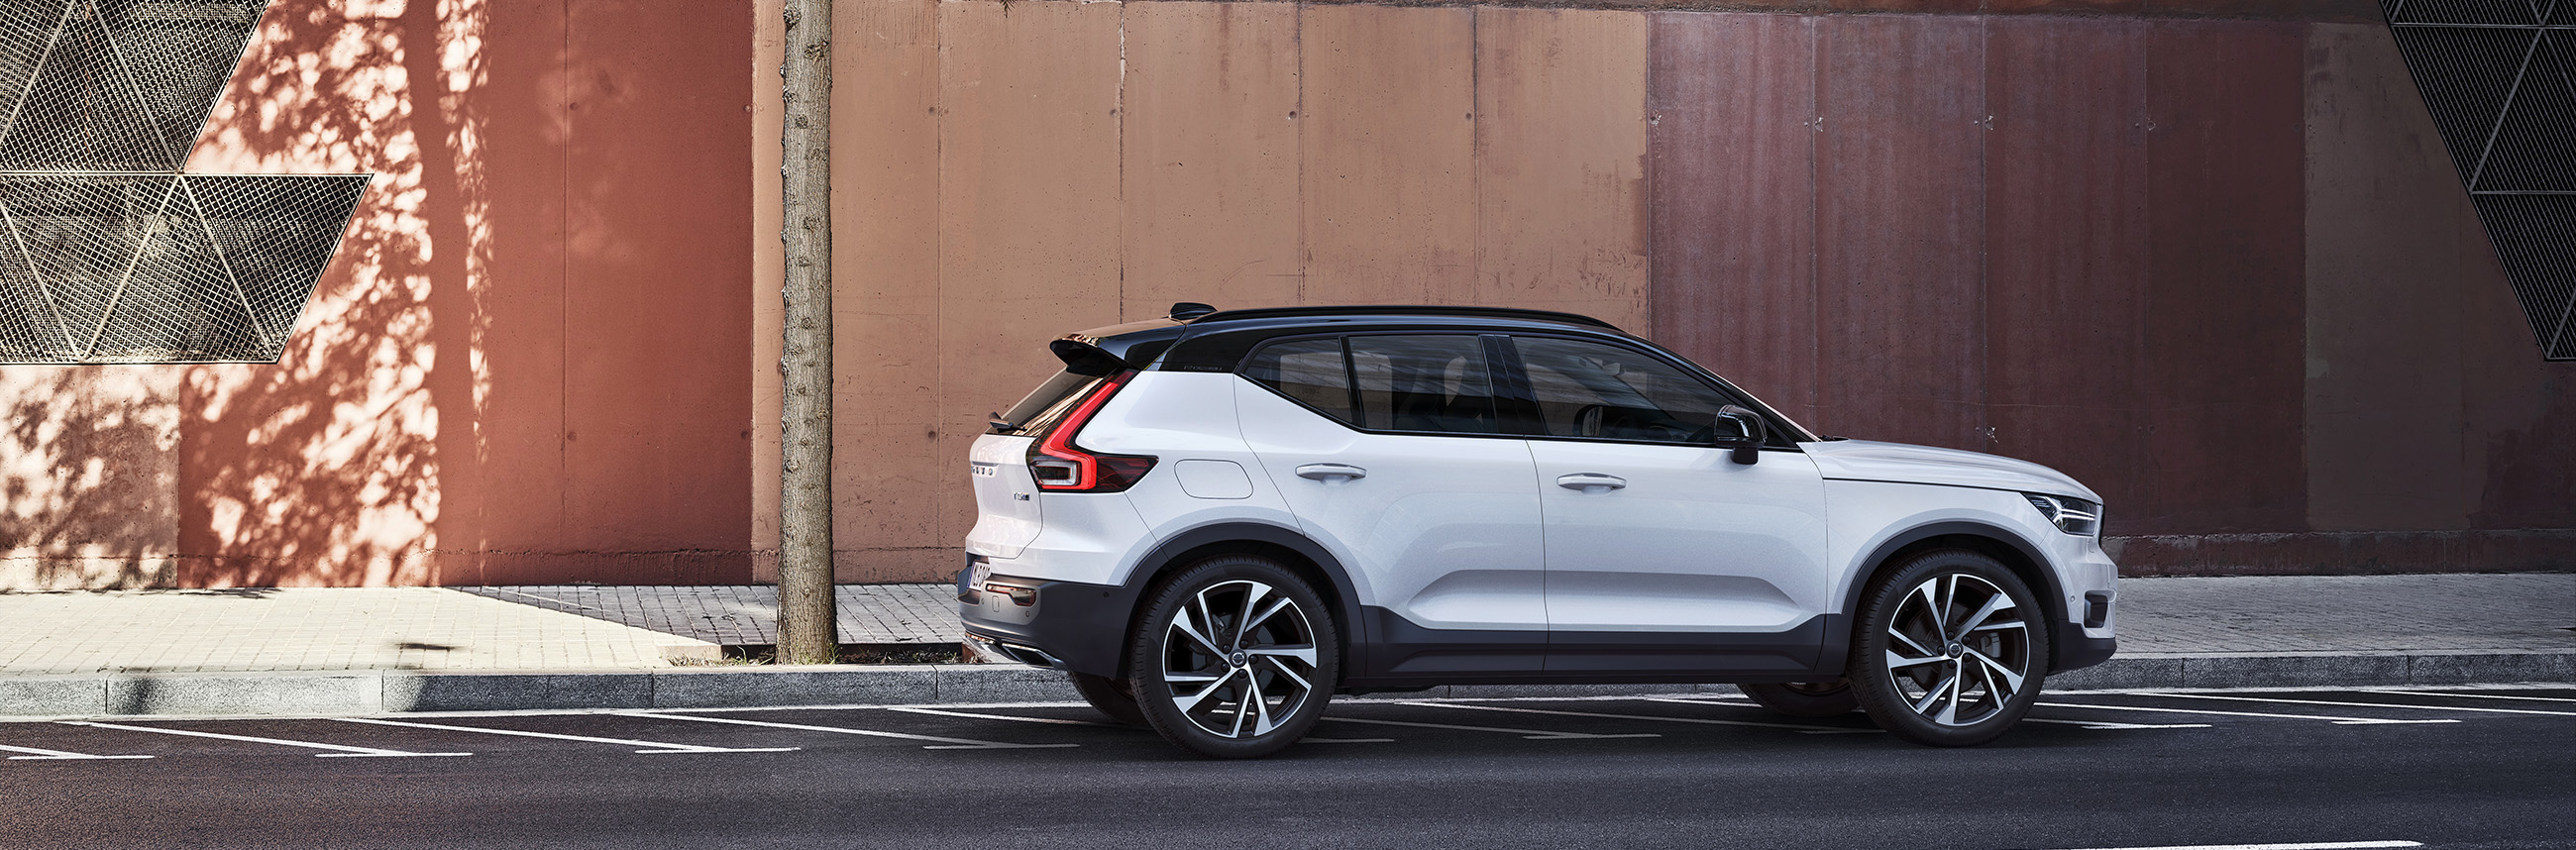 new xc40 completes global volvo line up for fast growing premium suv segment. Black Bedroom Furniture Sets. Home Design Ideas